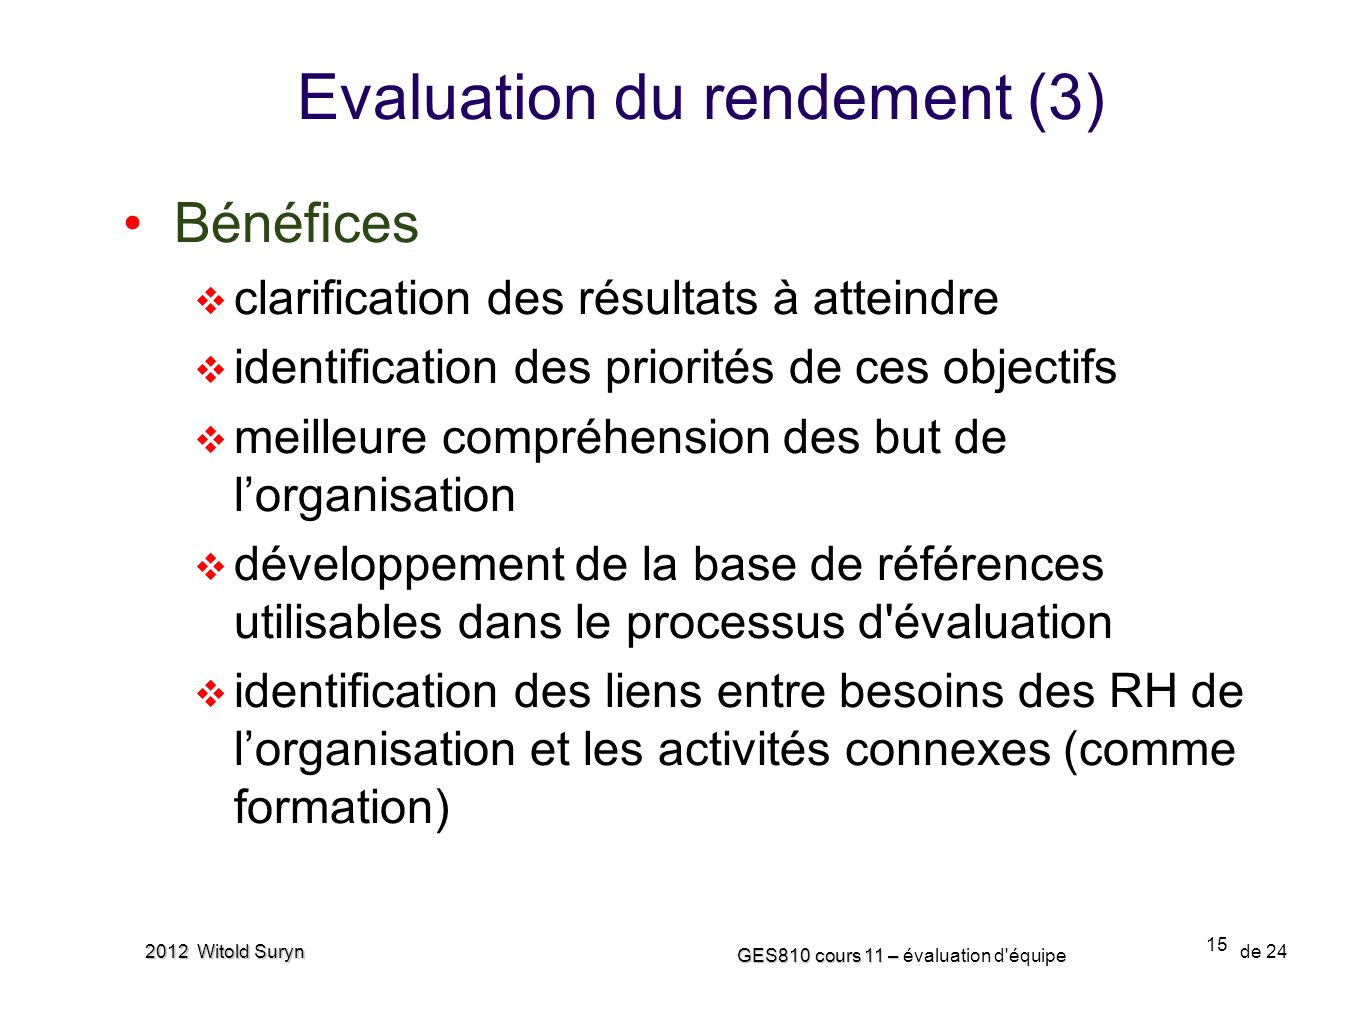 Evaluation du rendement (3)